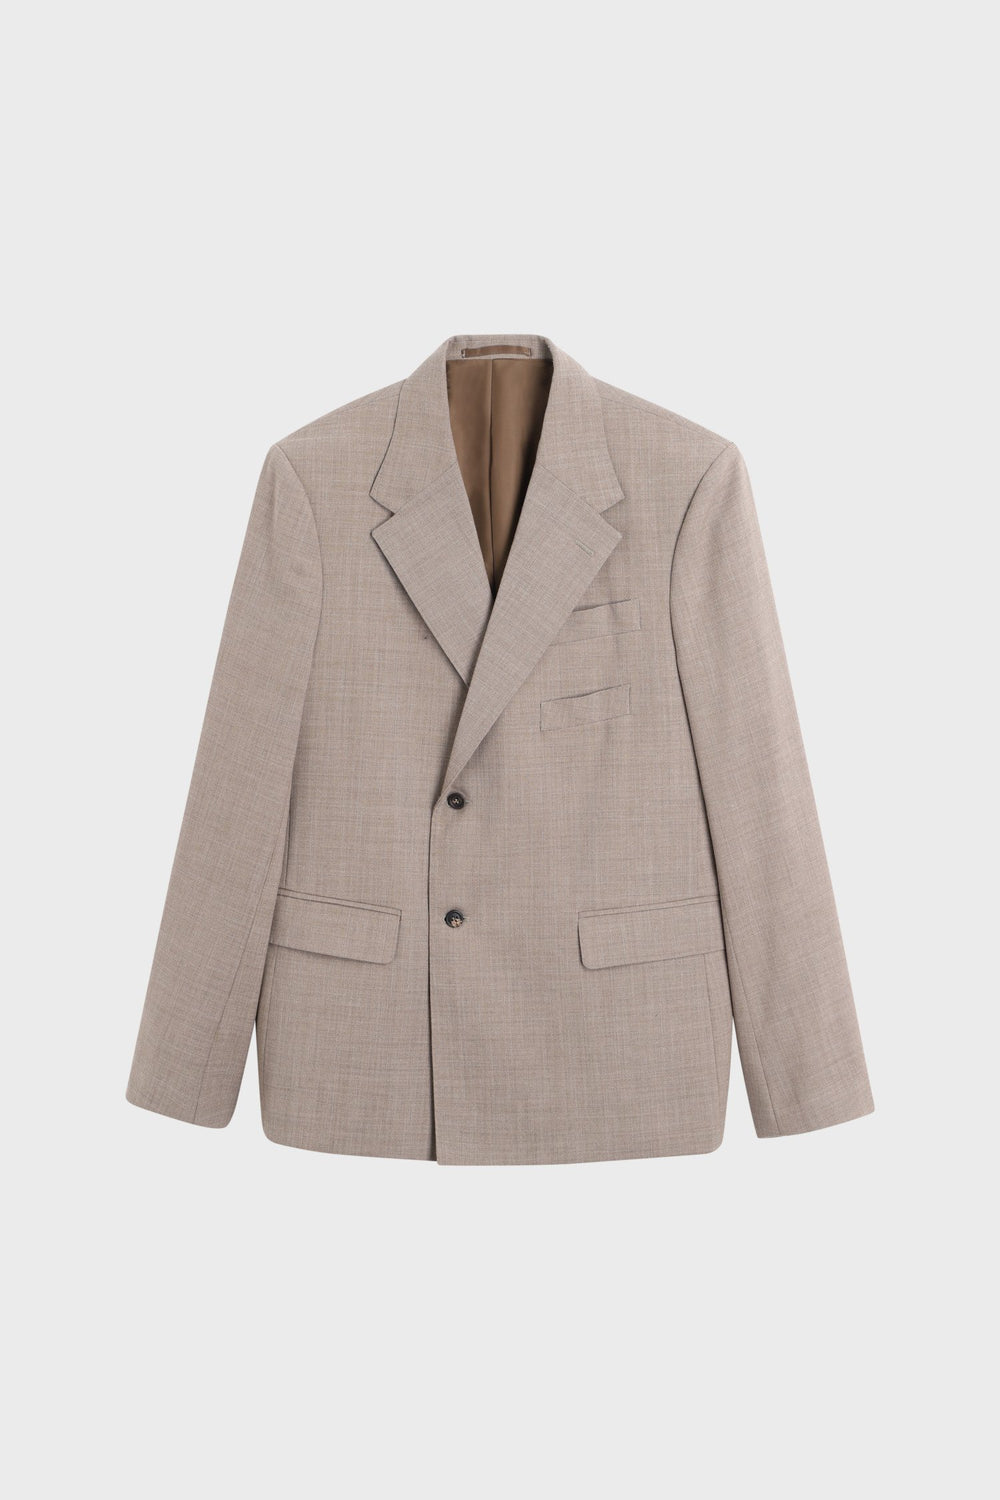 product-color-Prospector Suit Jacket